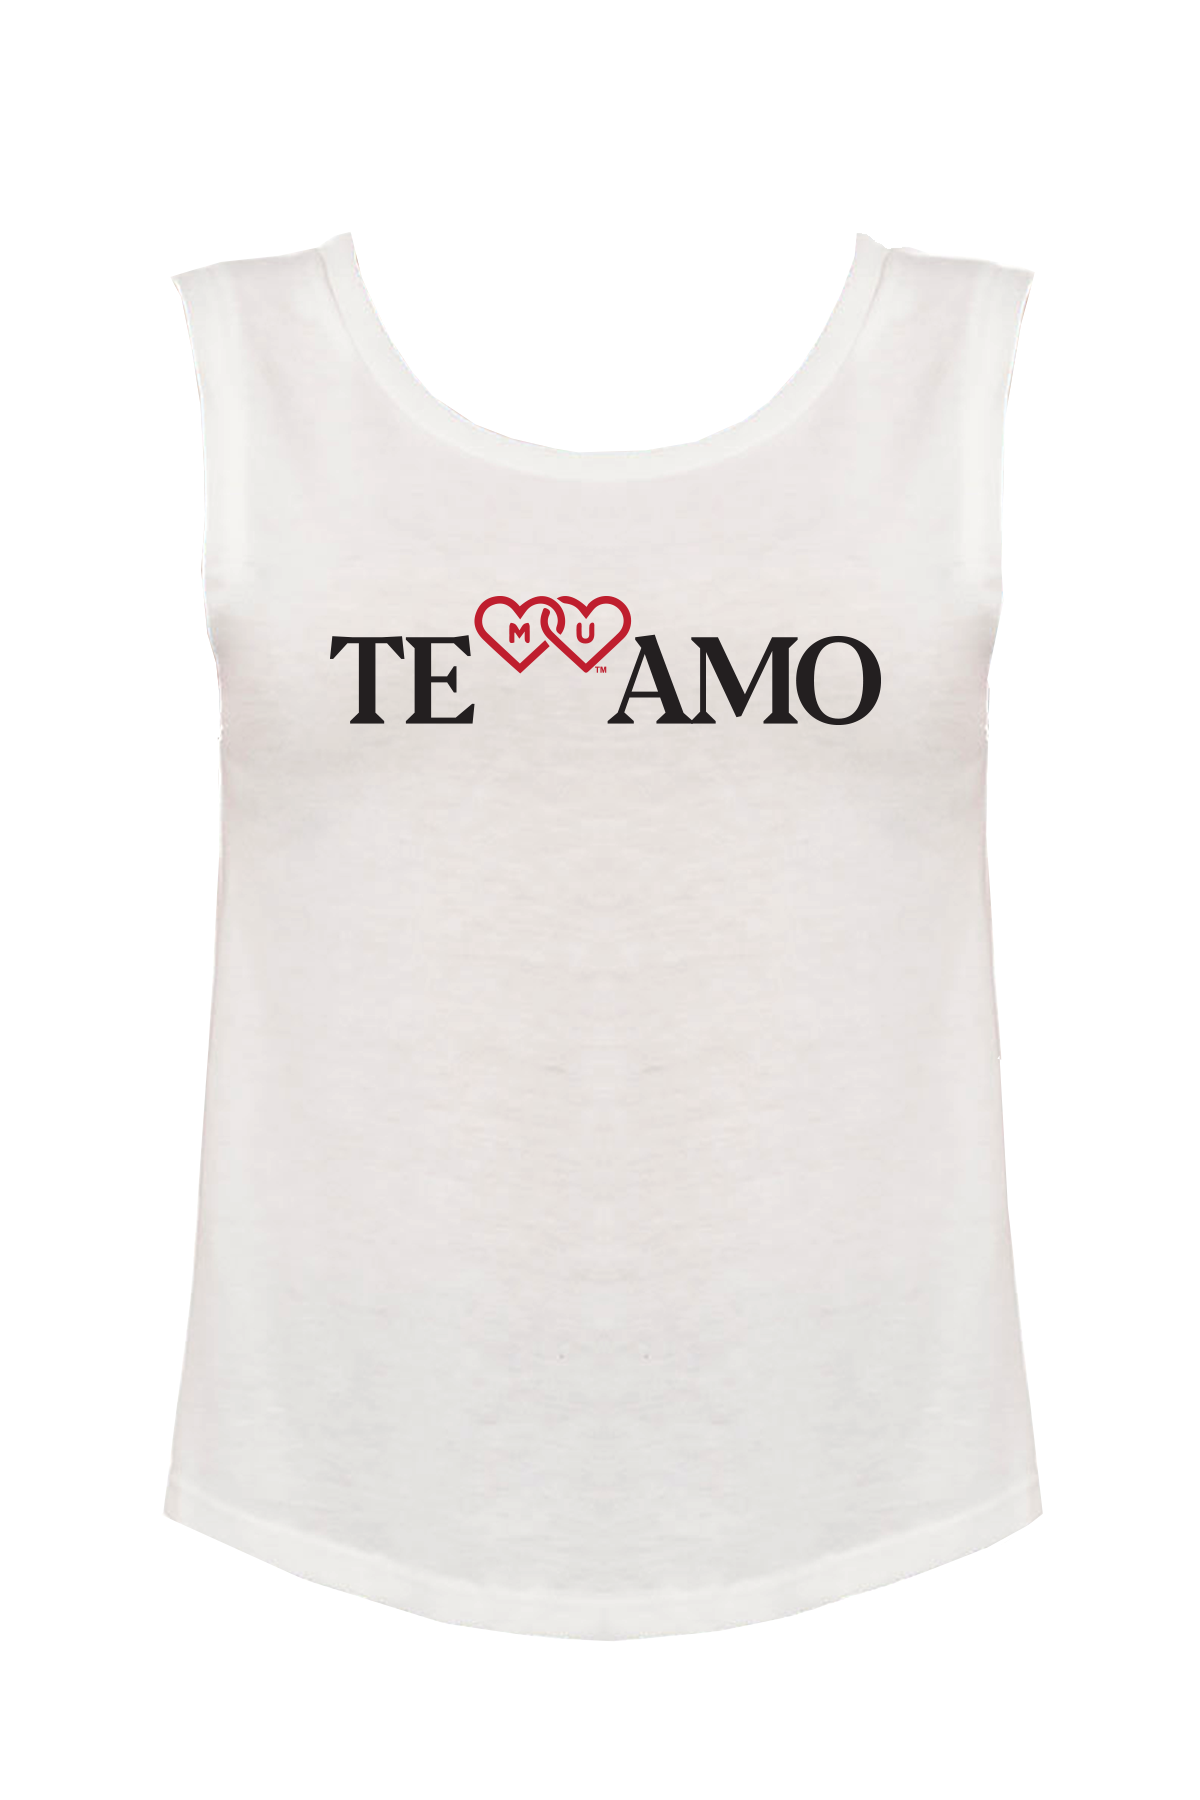 MIAMI UNIVERSITY Redhawks Miami Merger Te Amo Women's Muscle Tank